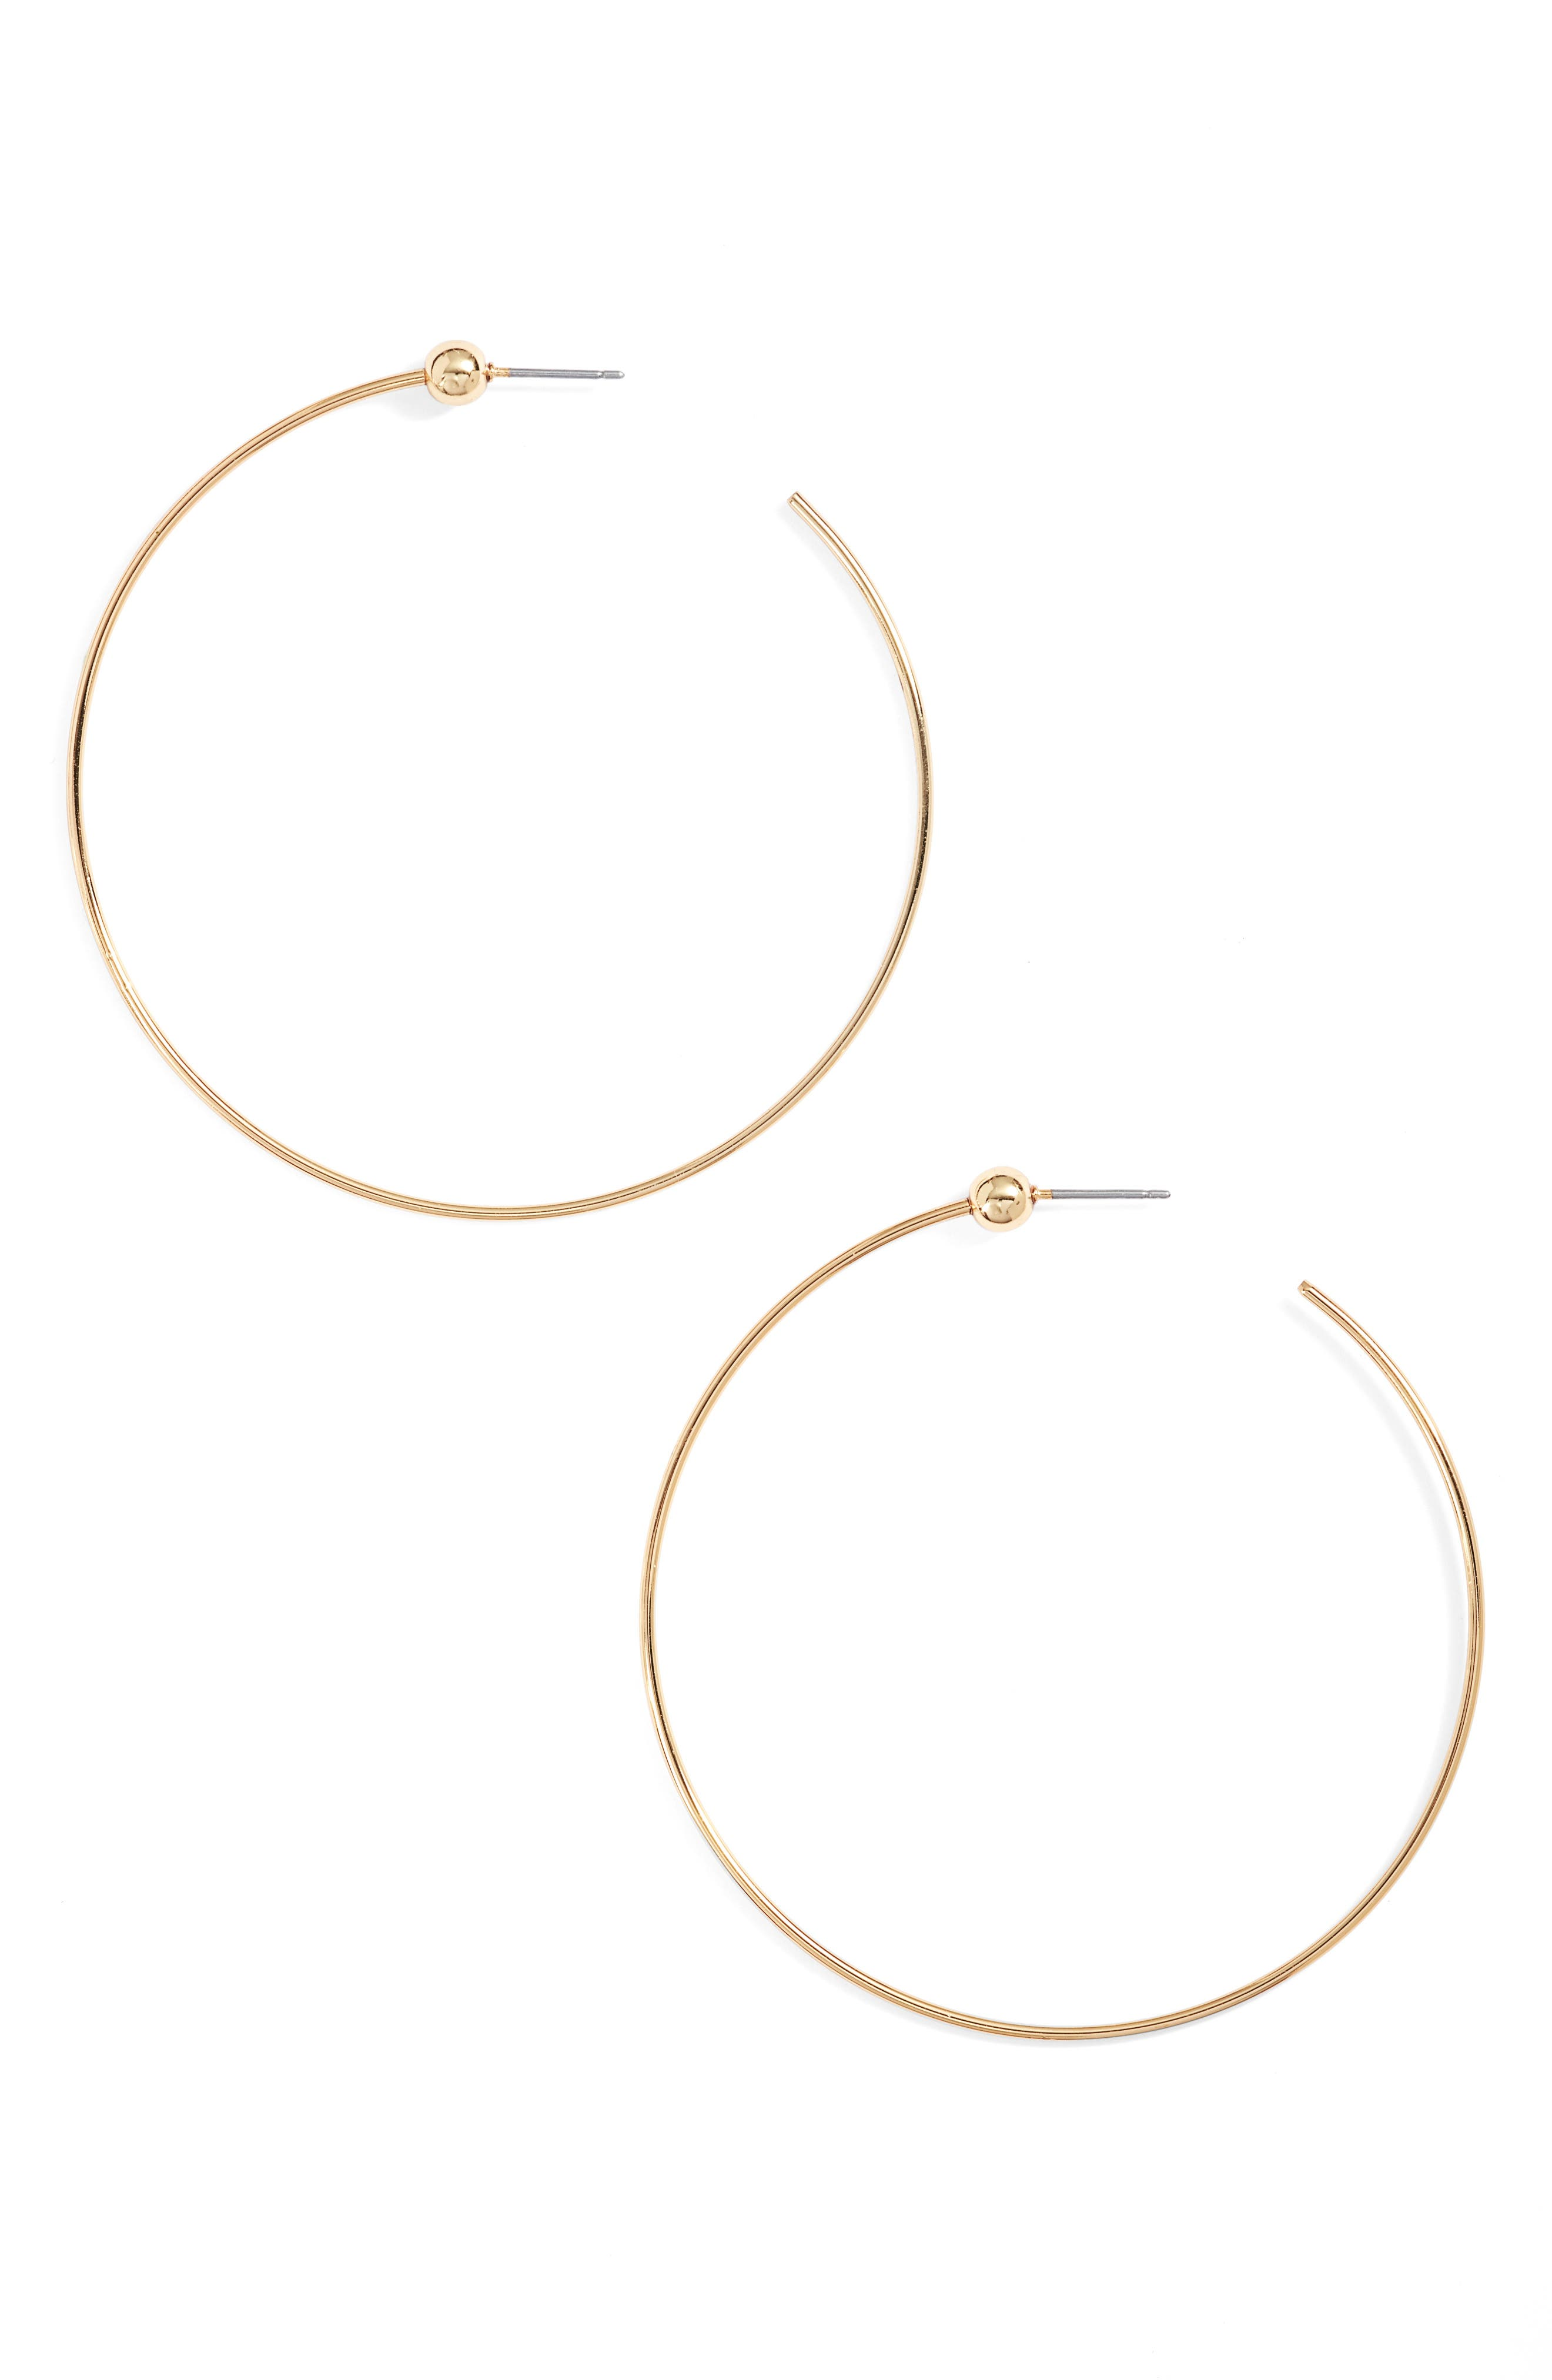 Medium Hoop Earrings,                             Main thumbnail 1, color,                             Gold